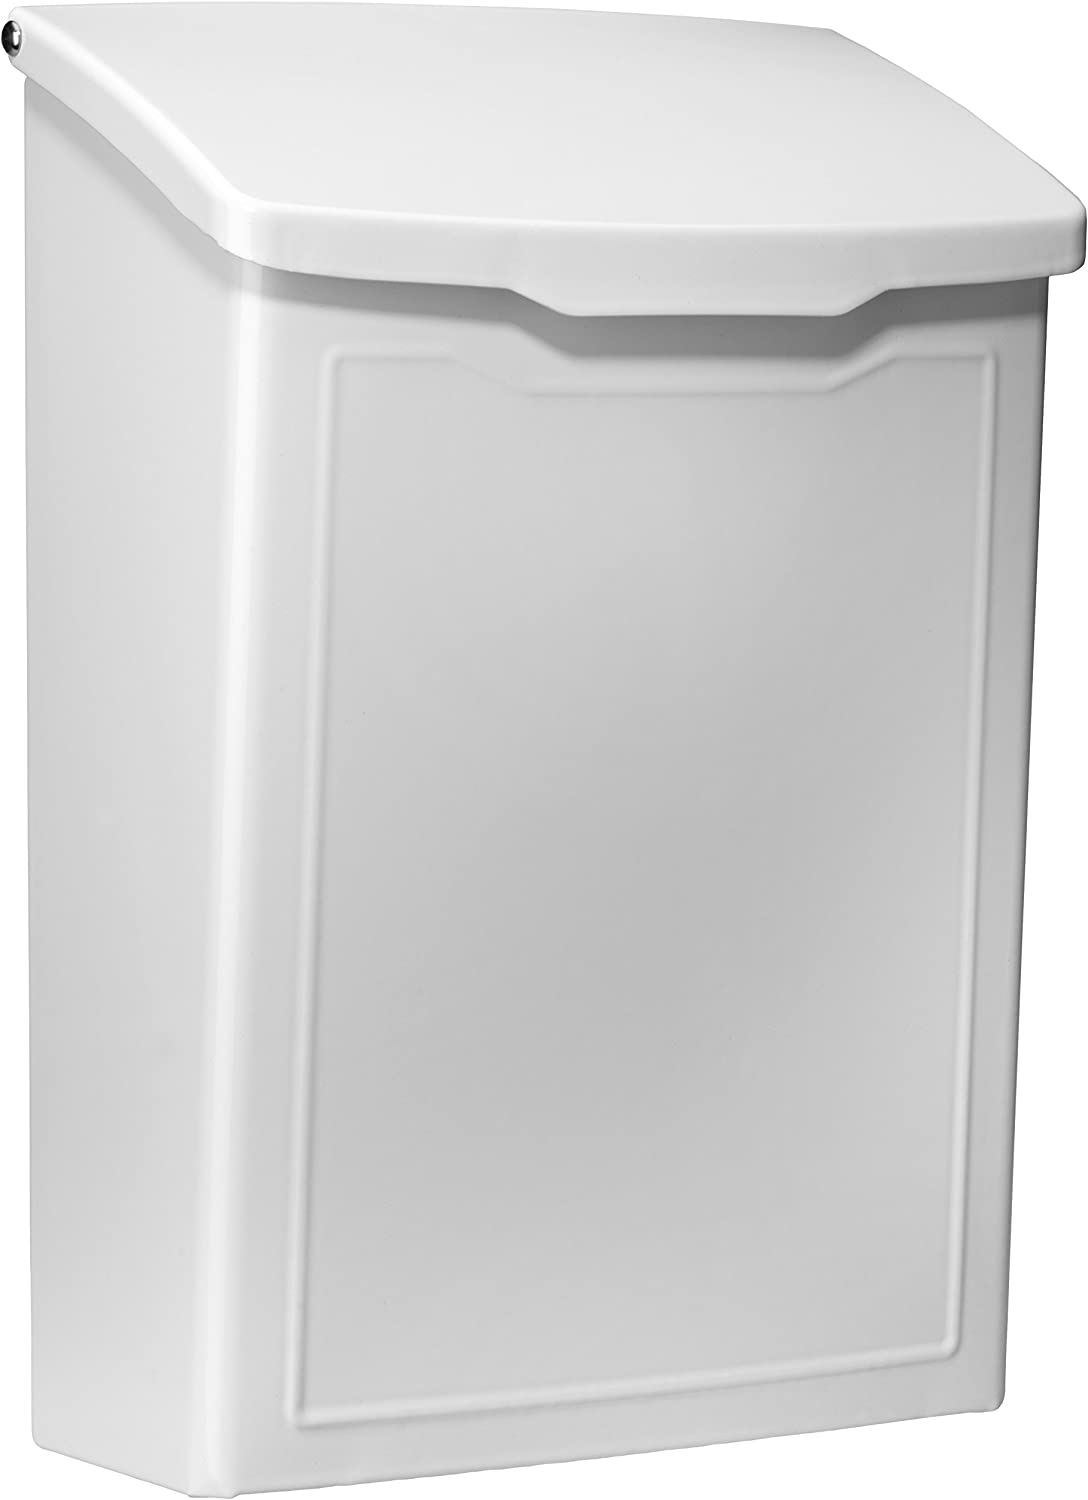 Architectural Mailboxes 2681W White Marina Wall Mount Mailbox, Small